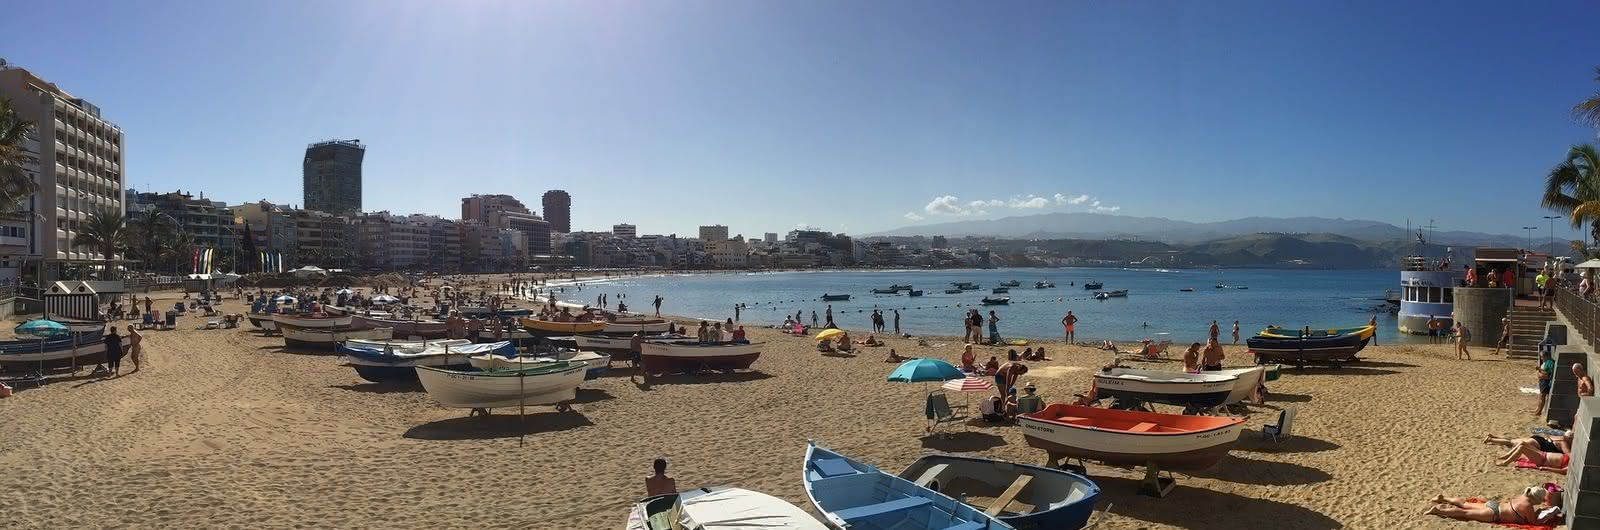 las palmas city header